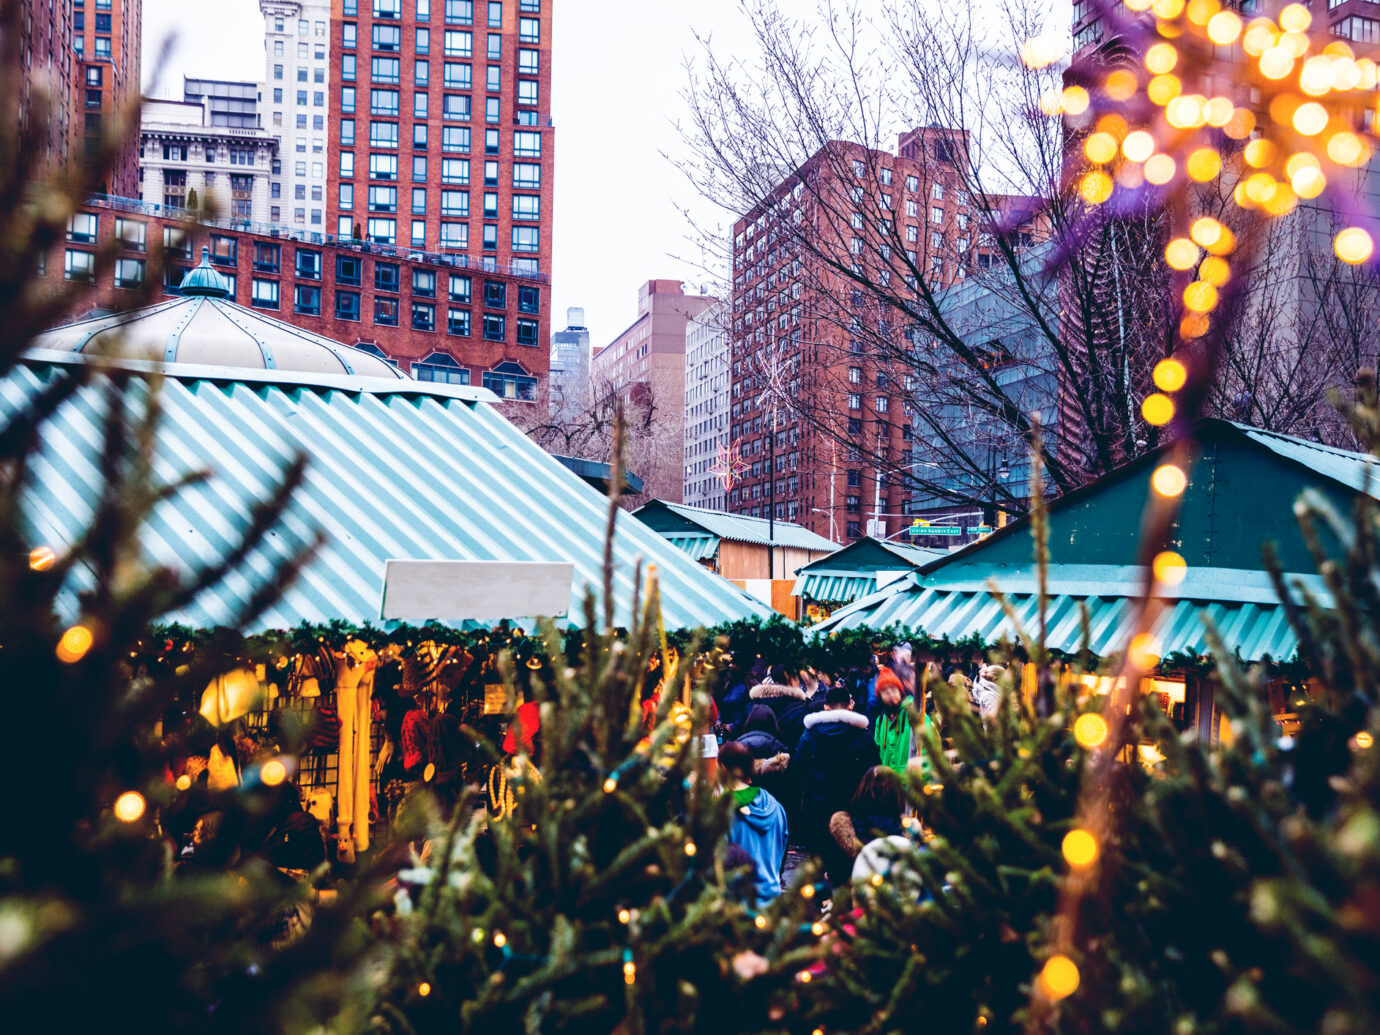 People visiting Christmas Market stands in Union Square in Midtown Manhattan.